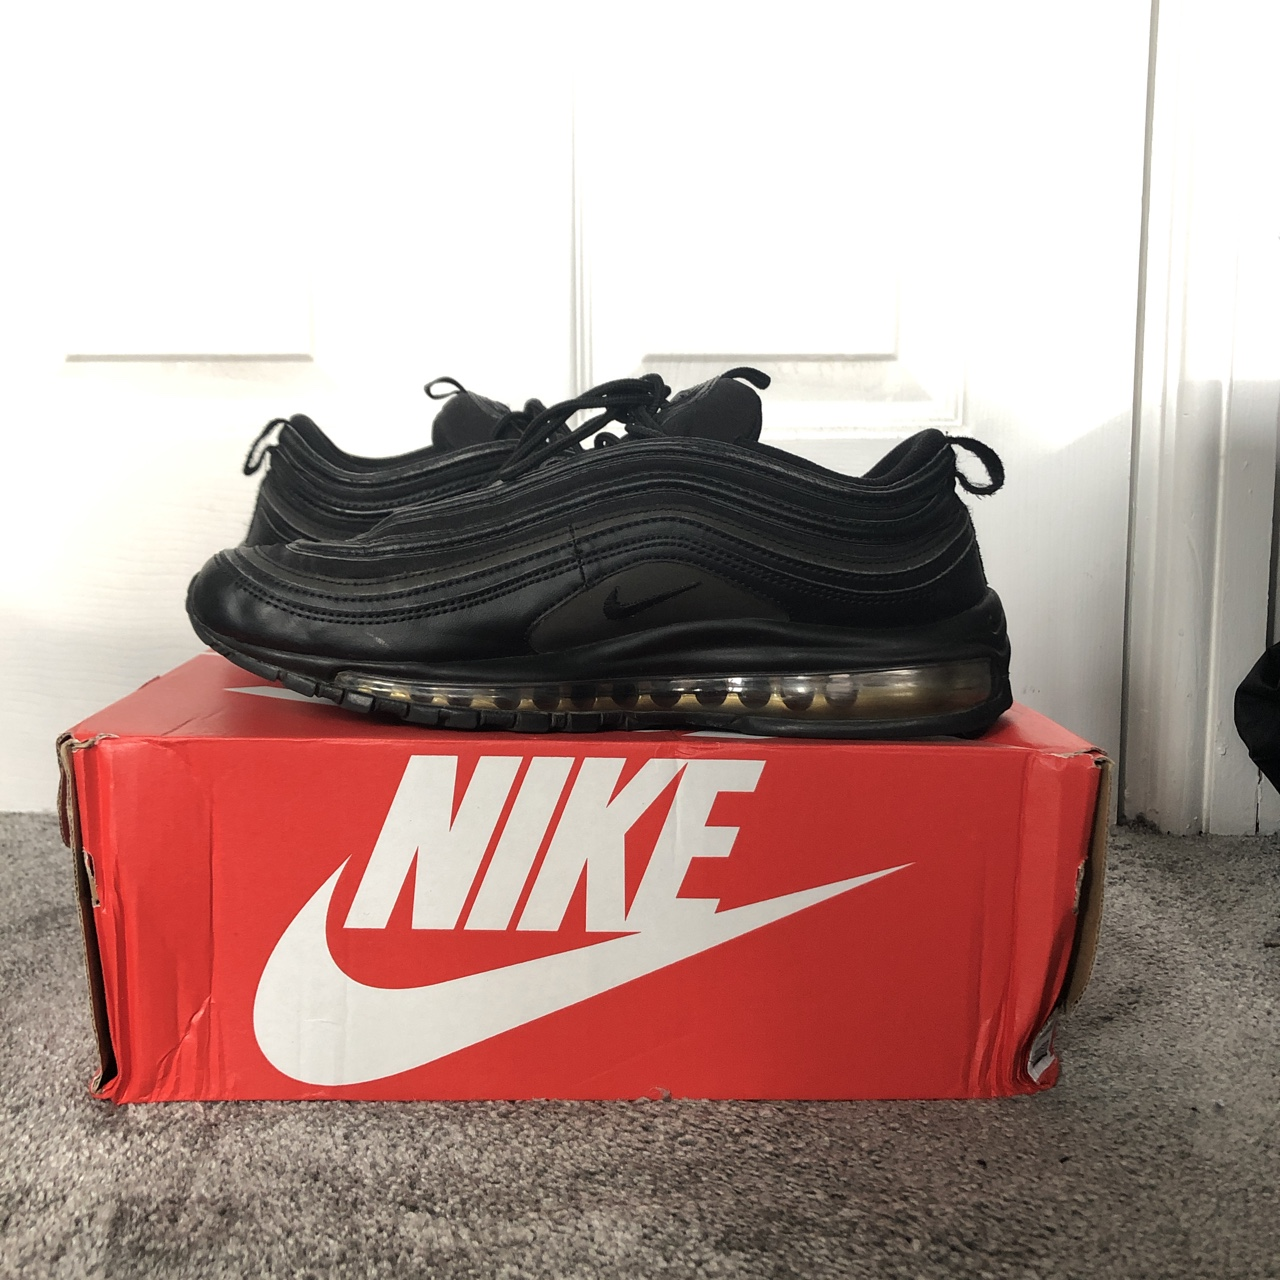 REDUCED❗️❗️❗️❗️Nike air max 97 LIMITED EDITION